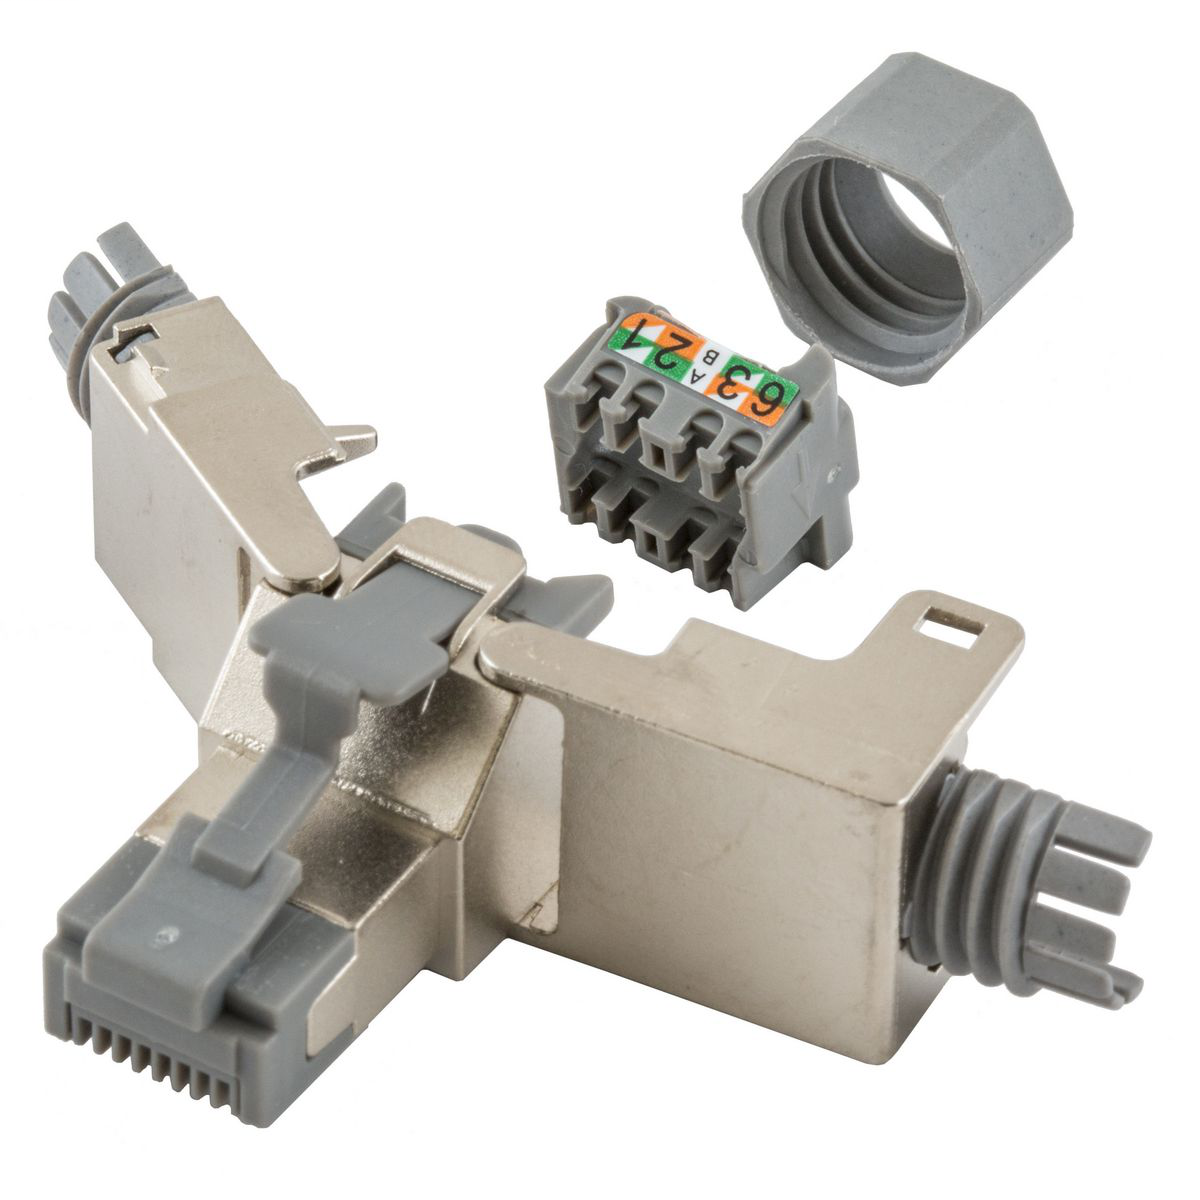 HUBBELL WIRING DEVICES Hubbell Premise Wiring, Plug, Category 6, Shielded, Field Termination,Silver